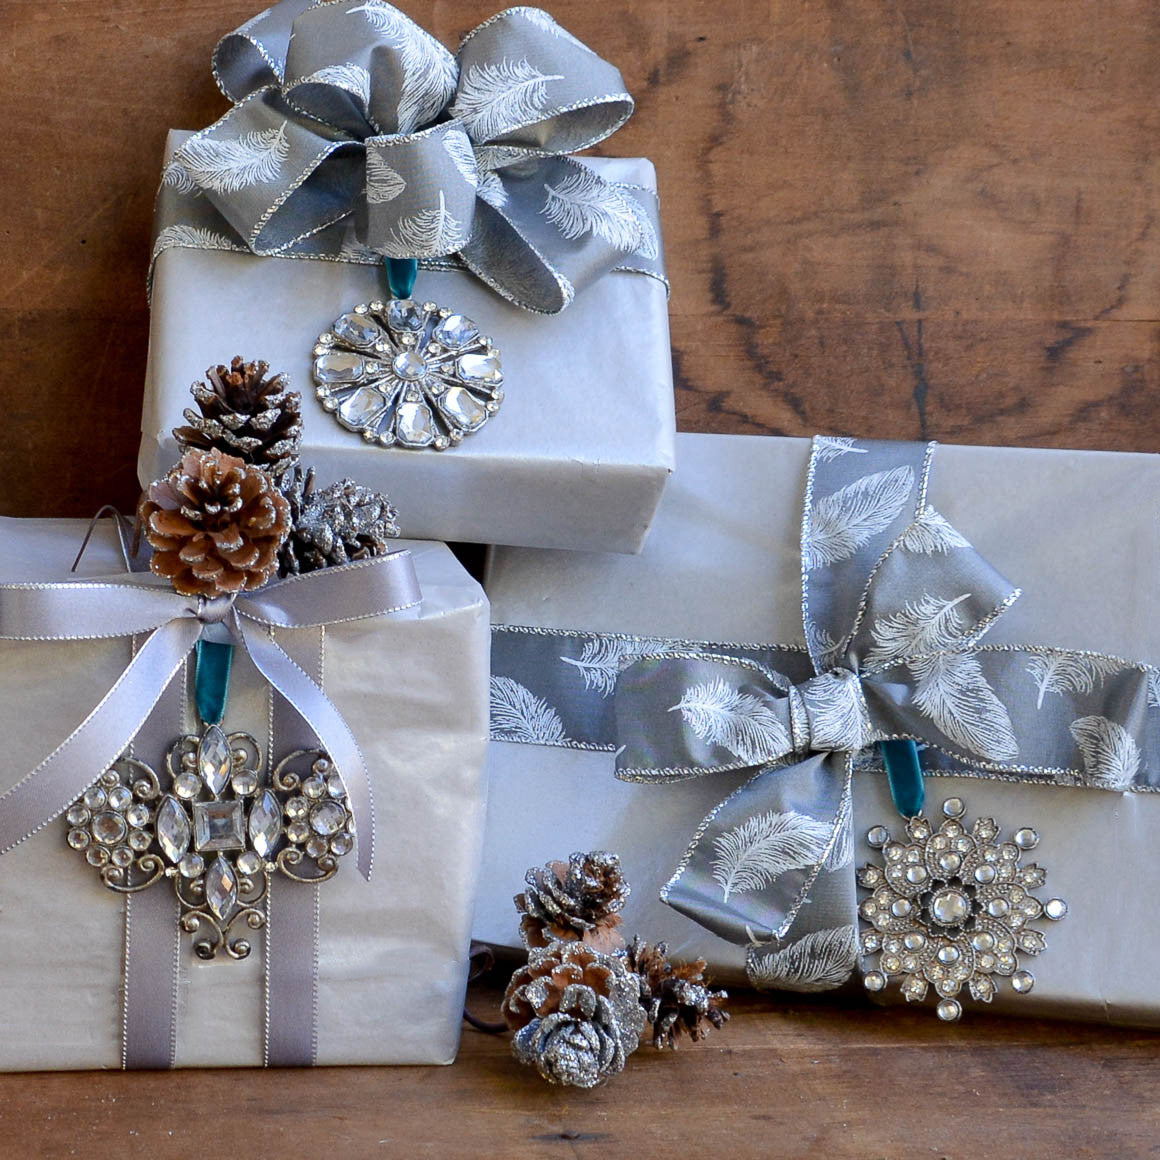 Elegant Crystal Jeweled Christmas Ornaments In Silver With